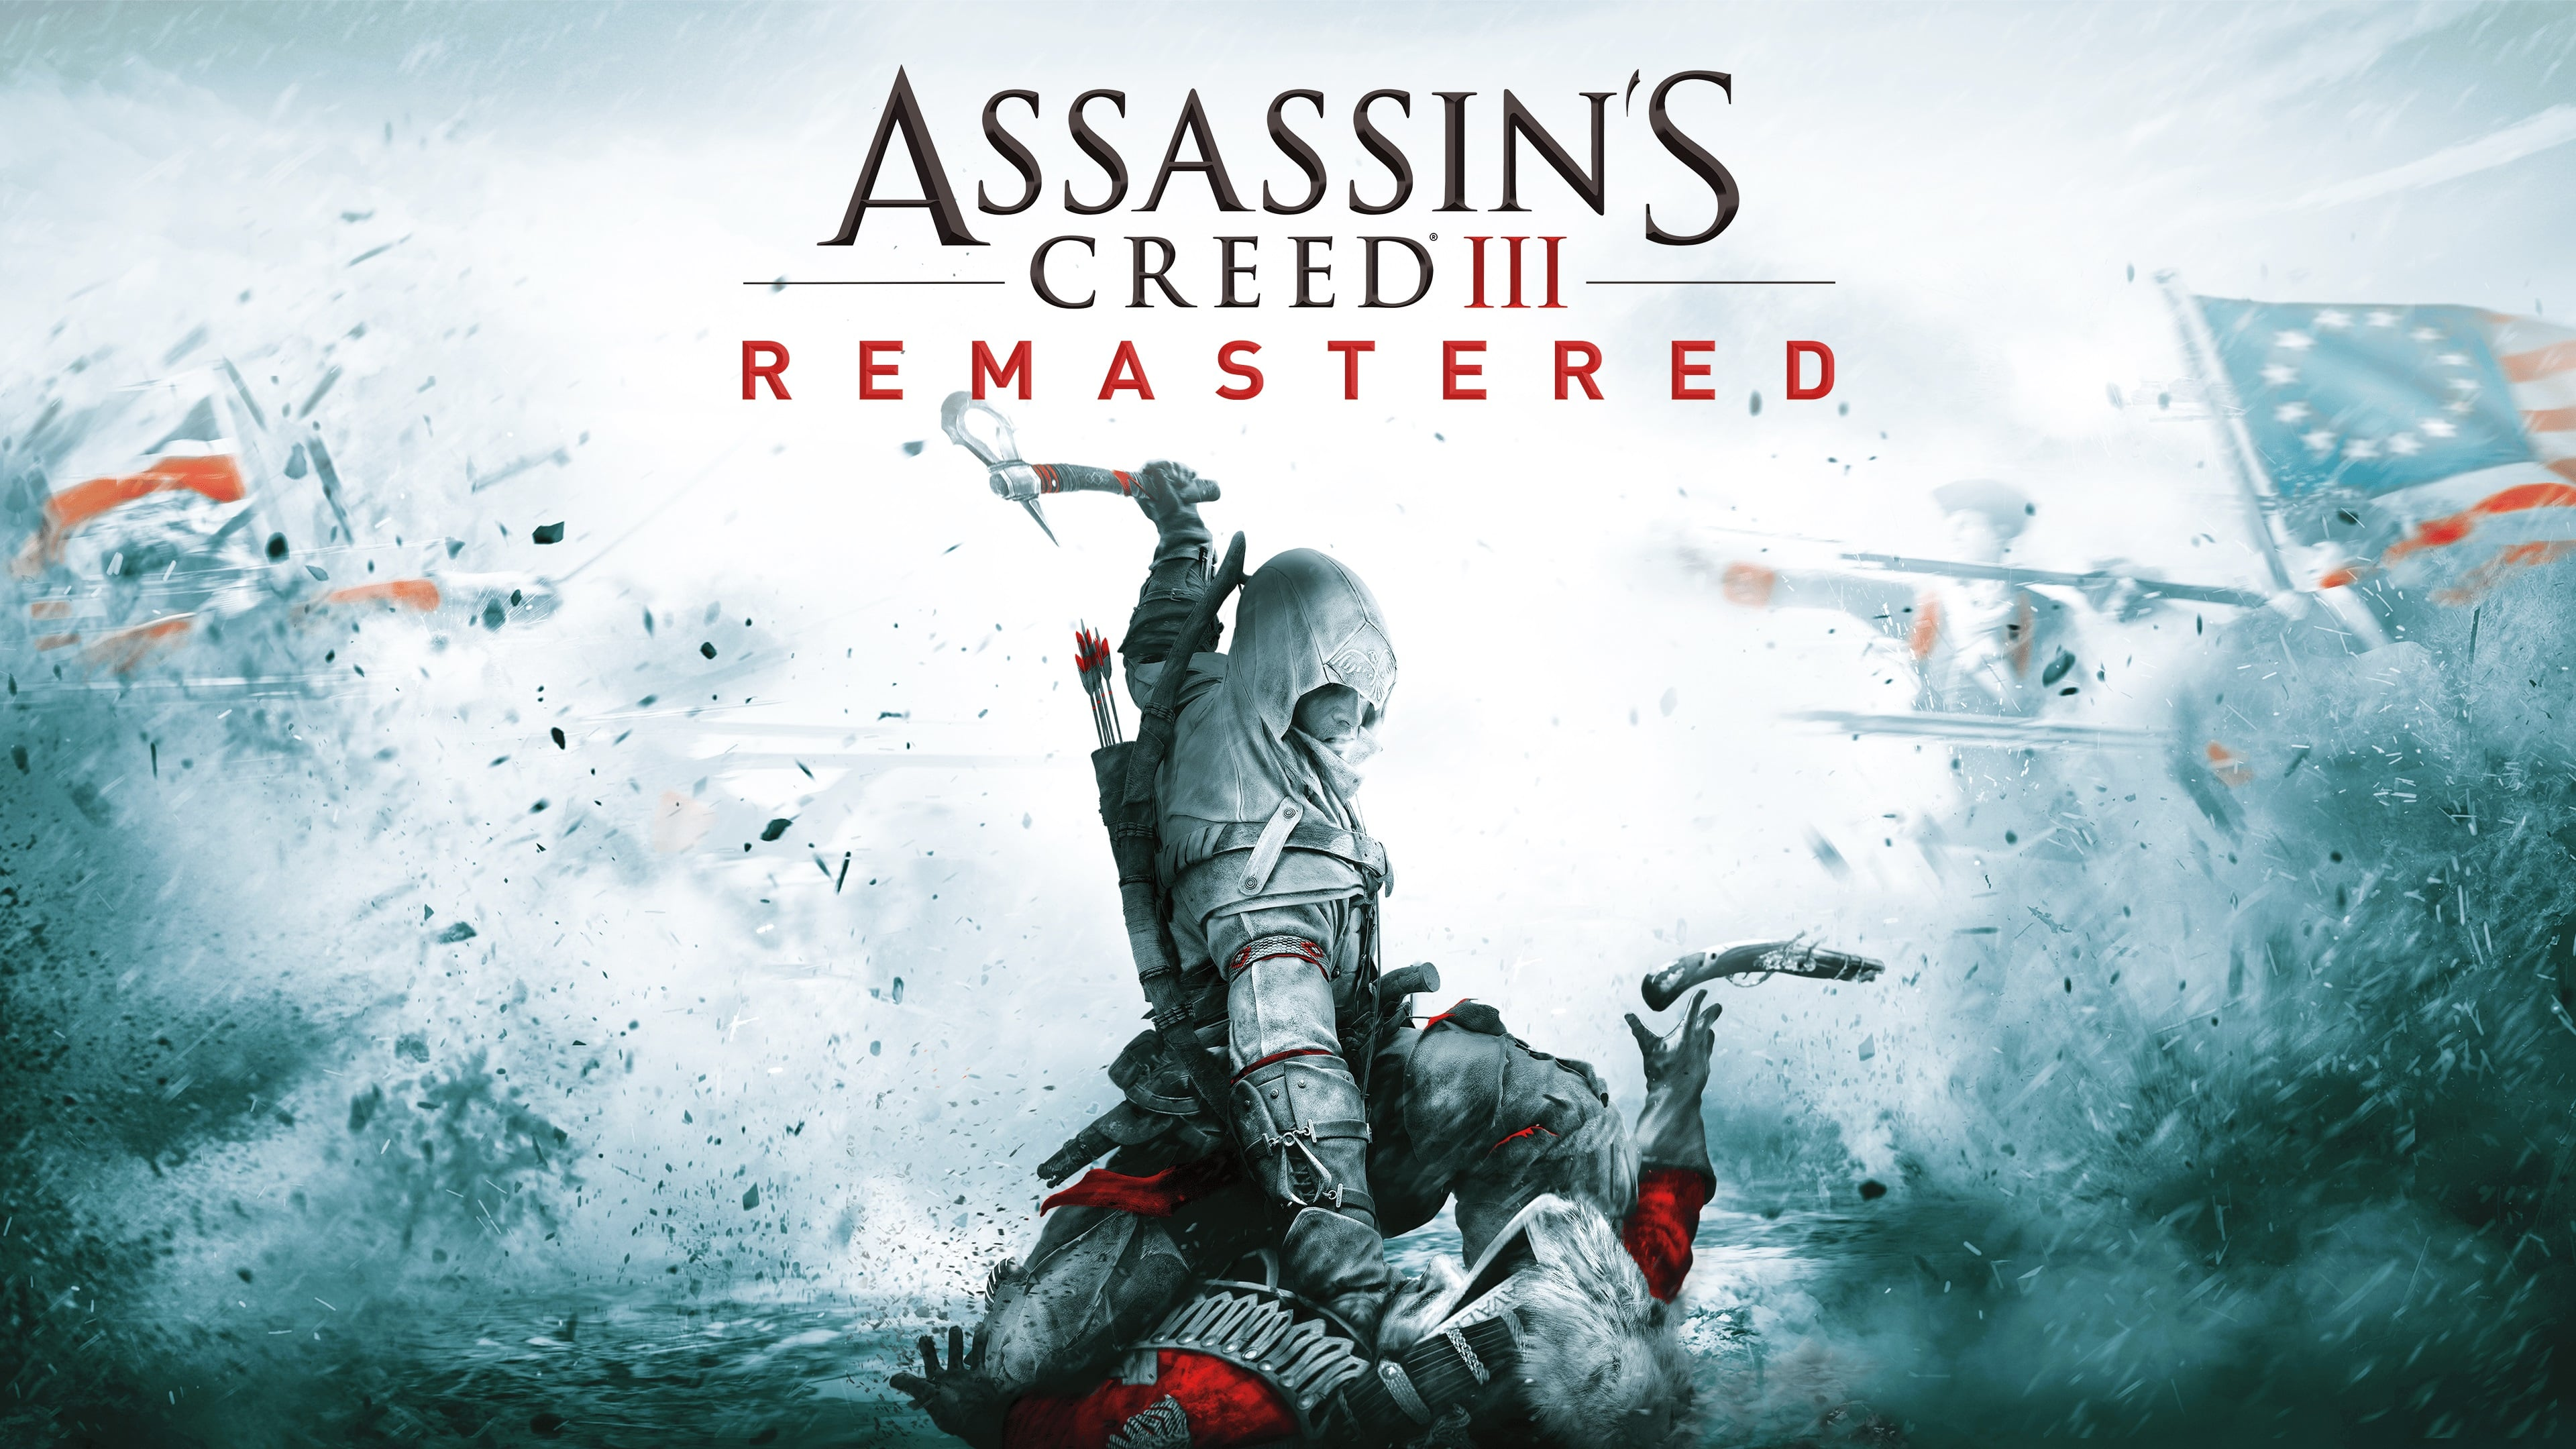 Assassin S Creed Iii Remastered Achievement List Revealed